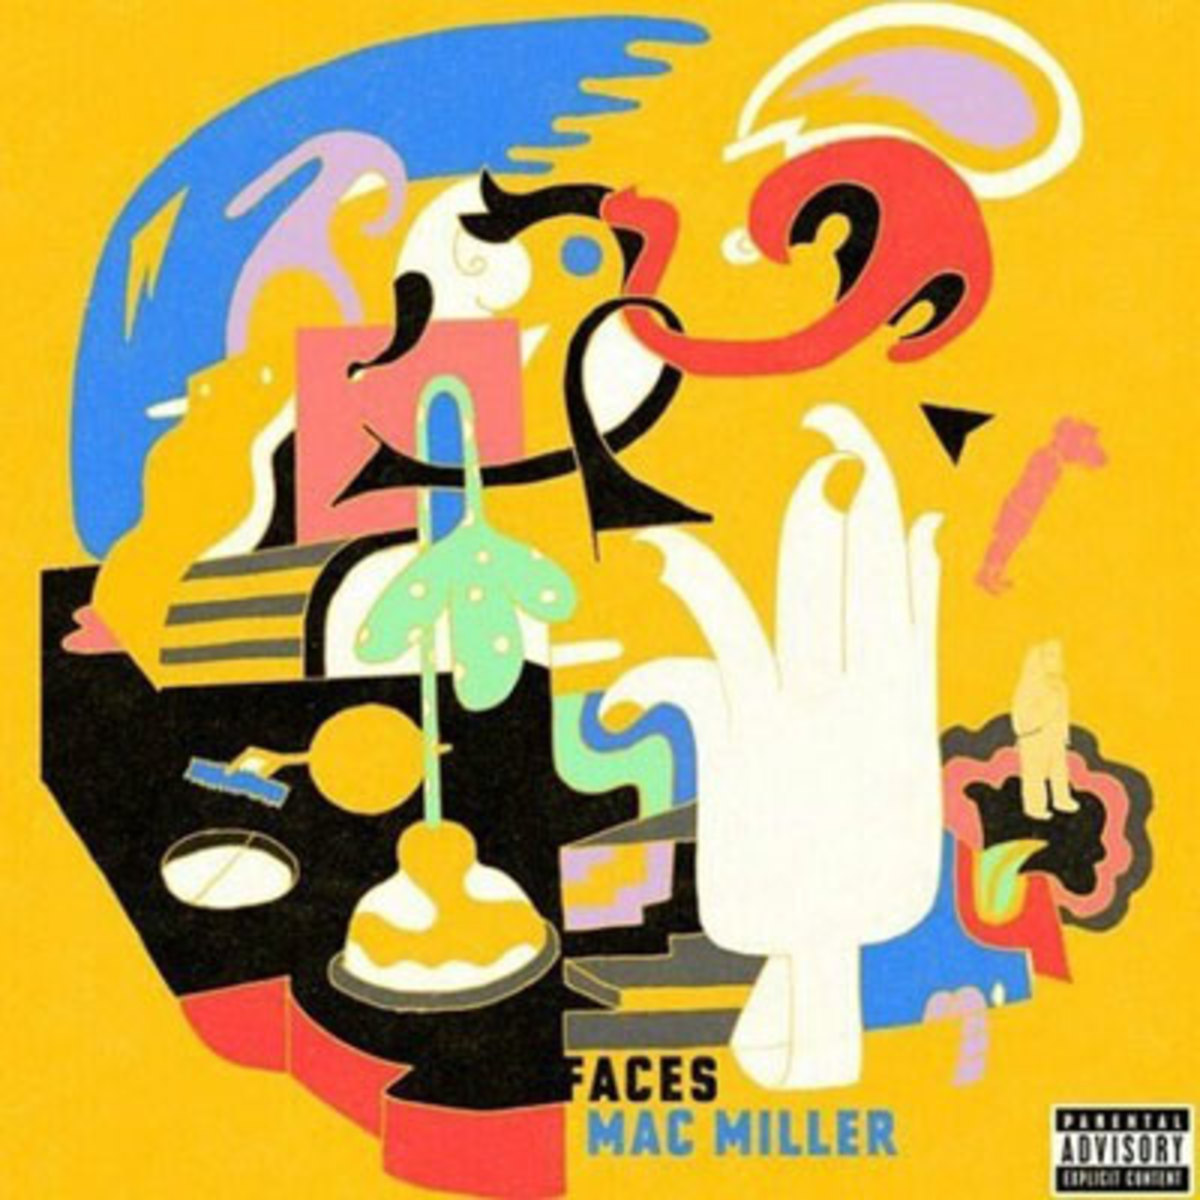 macmiller-faces.jpg